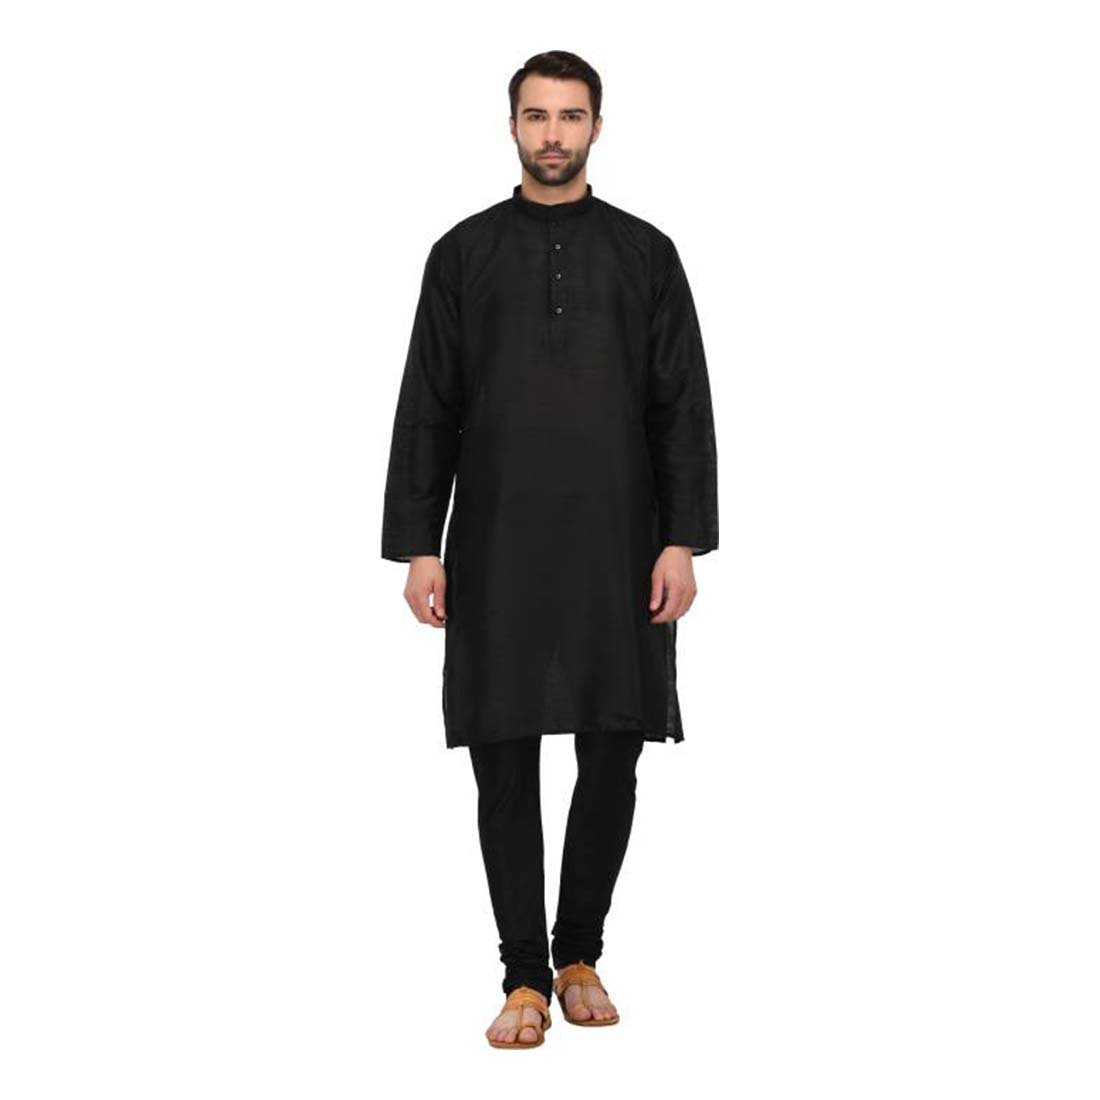 Men's Black Solid Full Sleeve Kurta and Pyjama Set